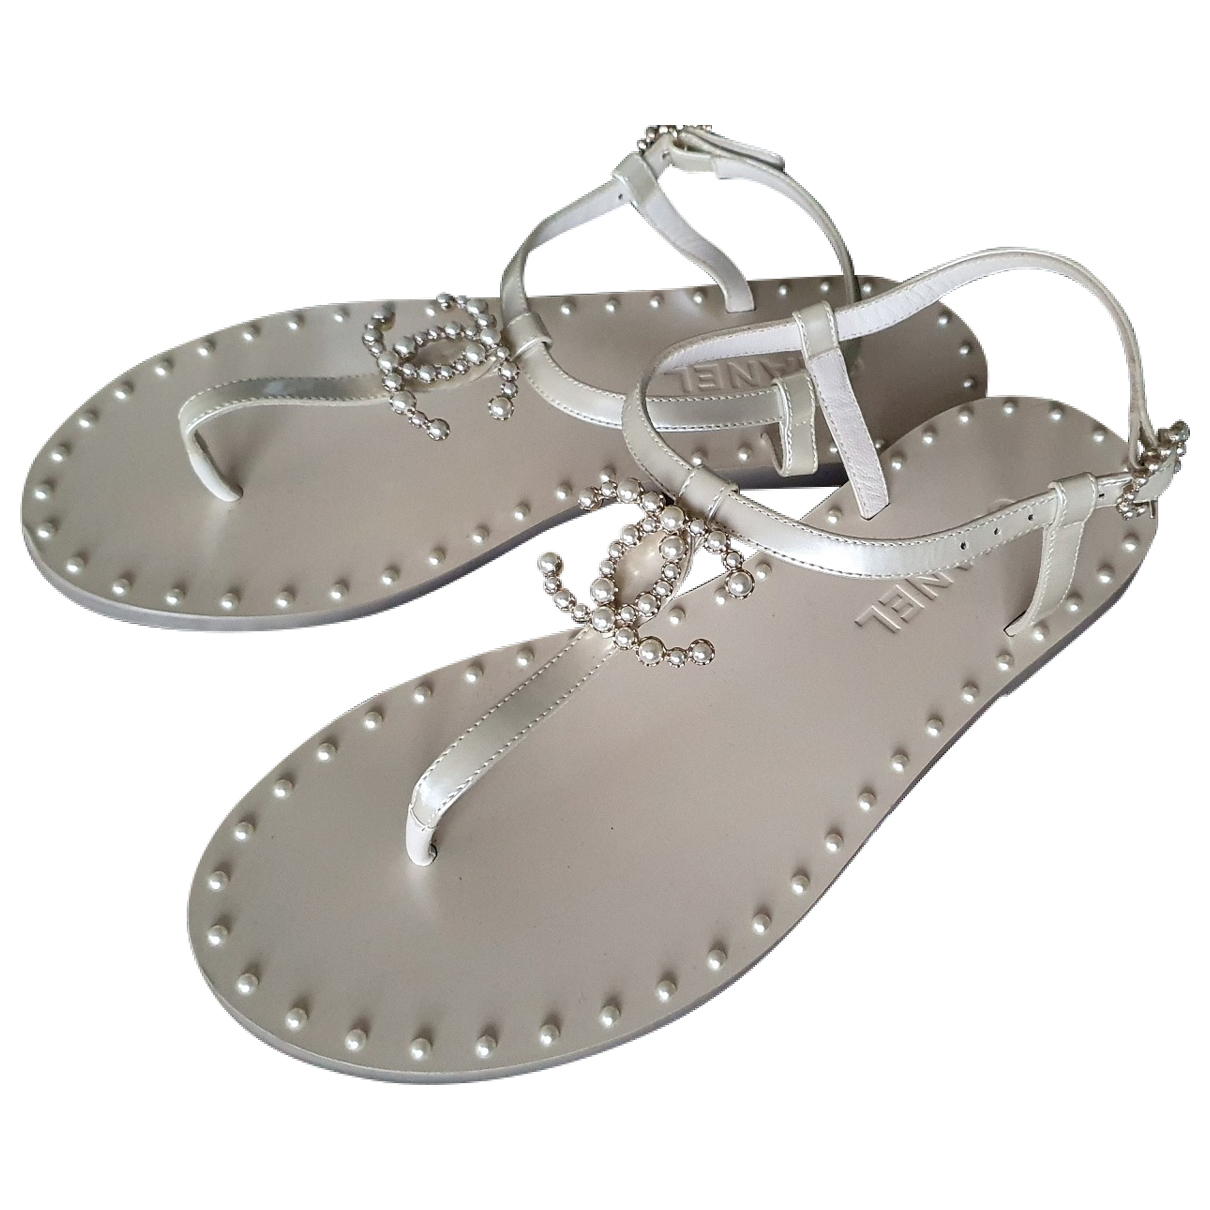 Chanel \N White Leather Sandals for Women 37 EU